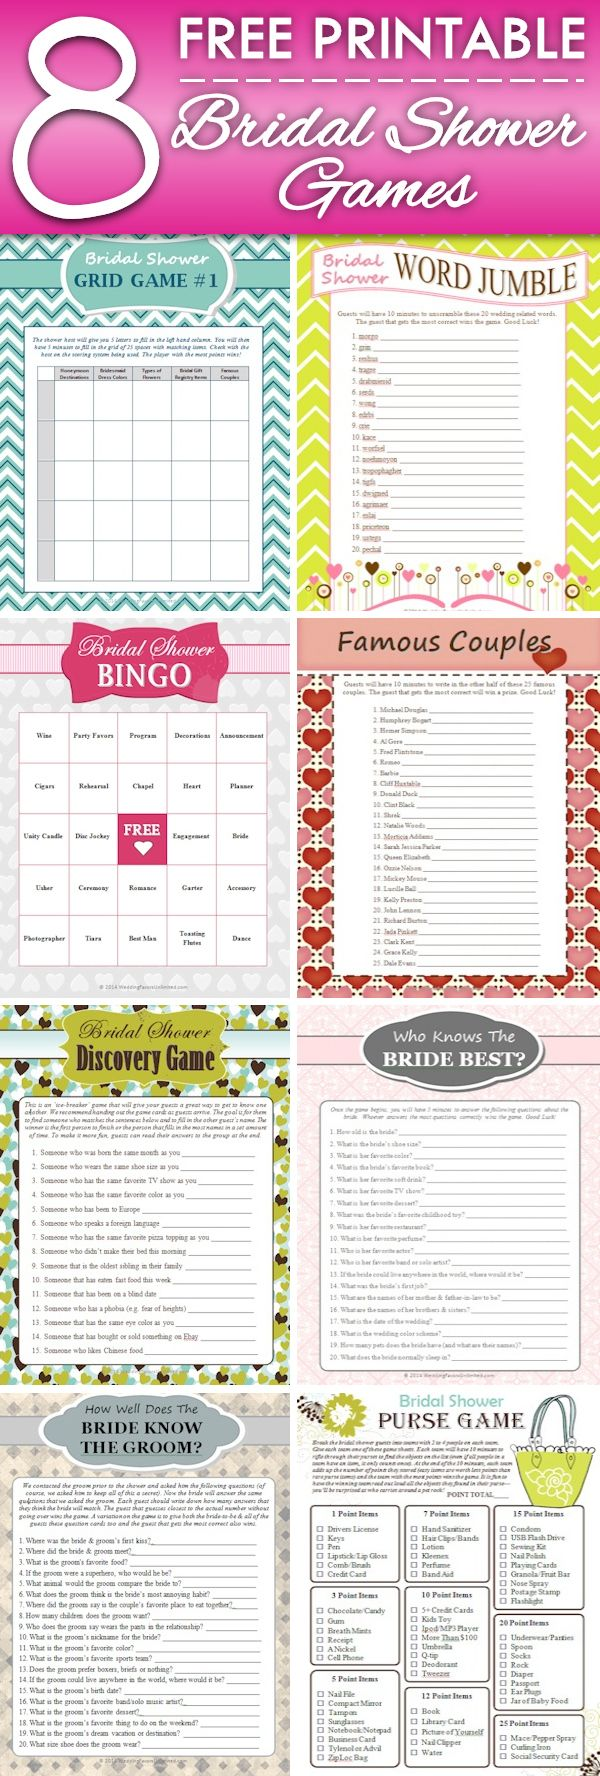 8 FREE Printable Bridal Shower Games - download some fun today! | My ...